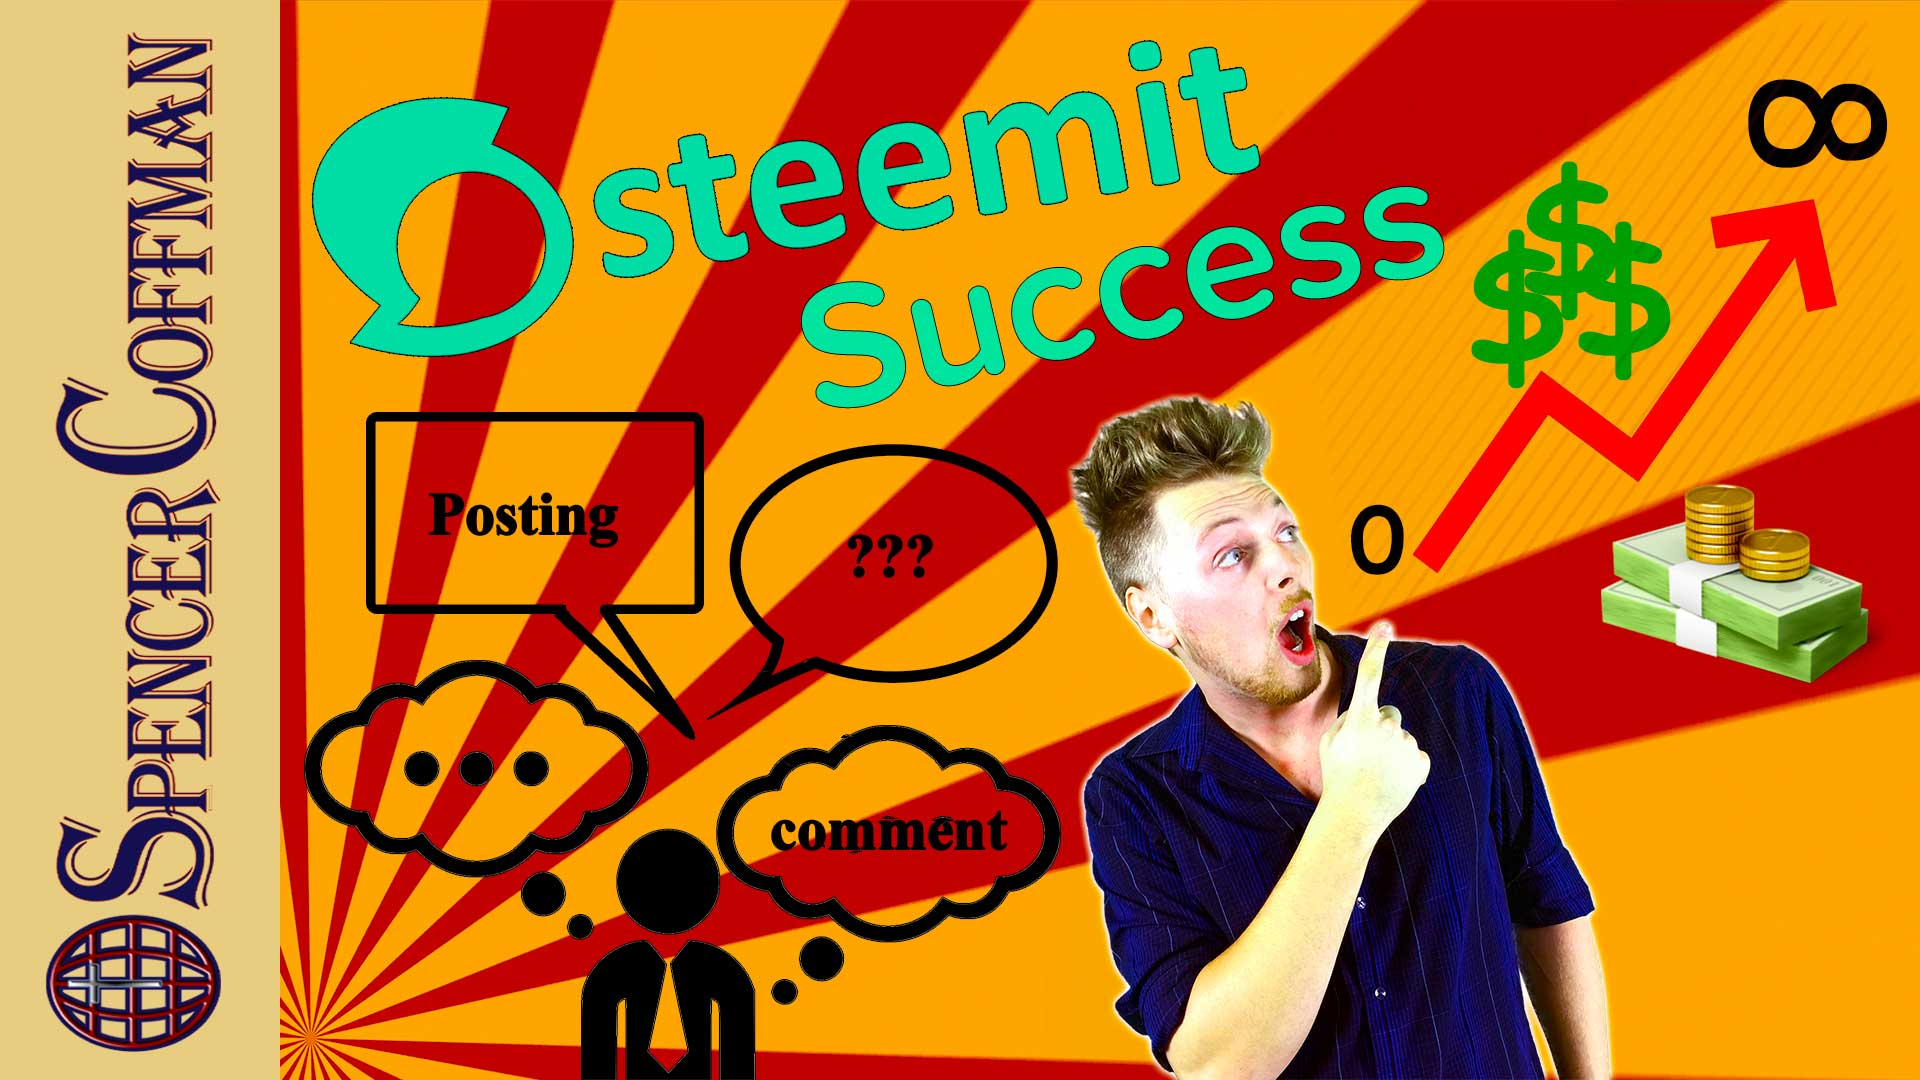 3 Tasks To Help You Grow Faster On Steemit